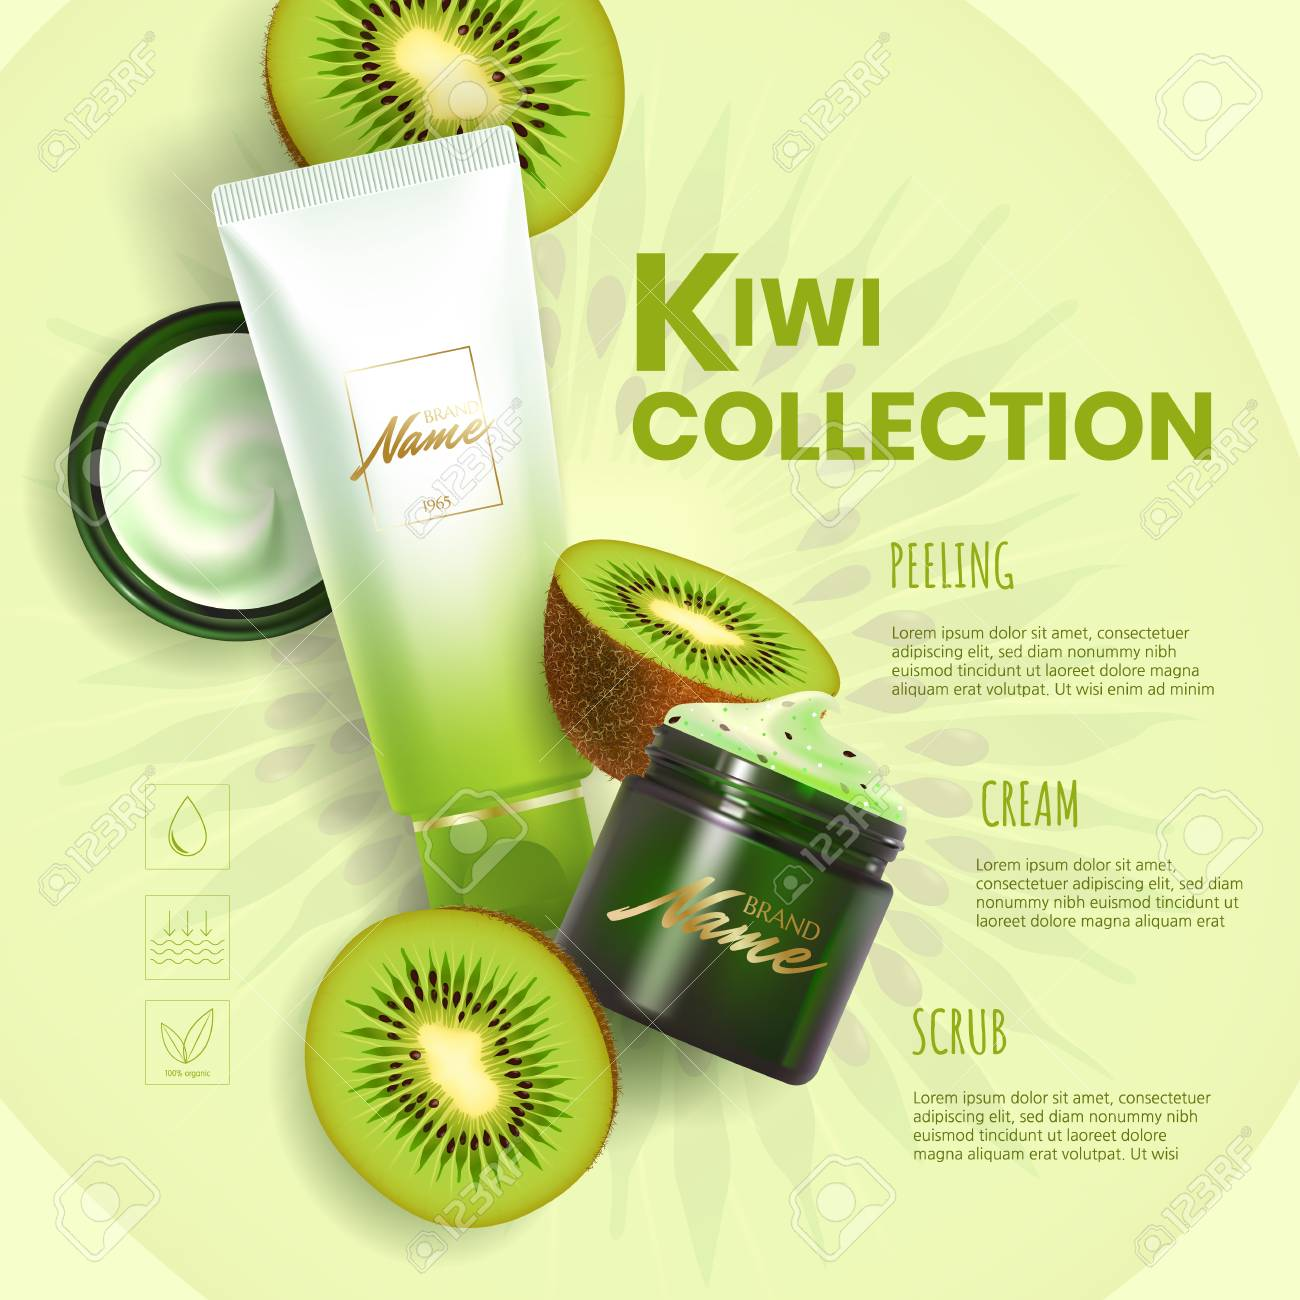 Design advertising poster for cosmetic product for catalog, magazine. Vector design of cosmetic package.Moisturizing cream, gel, scrub, body lotion with kiwi extract. - 110532565